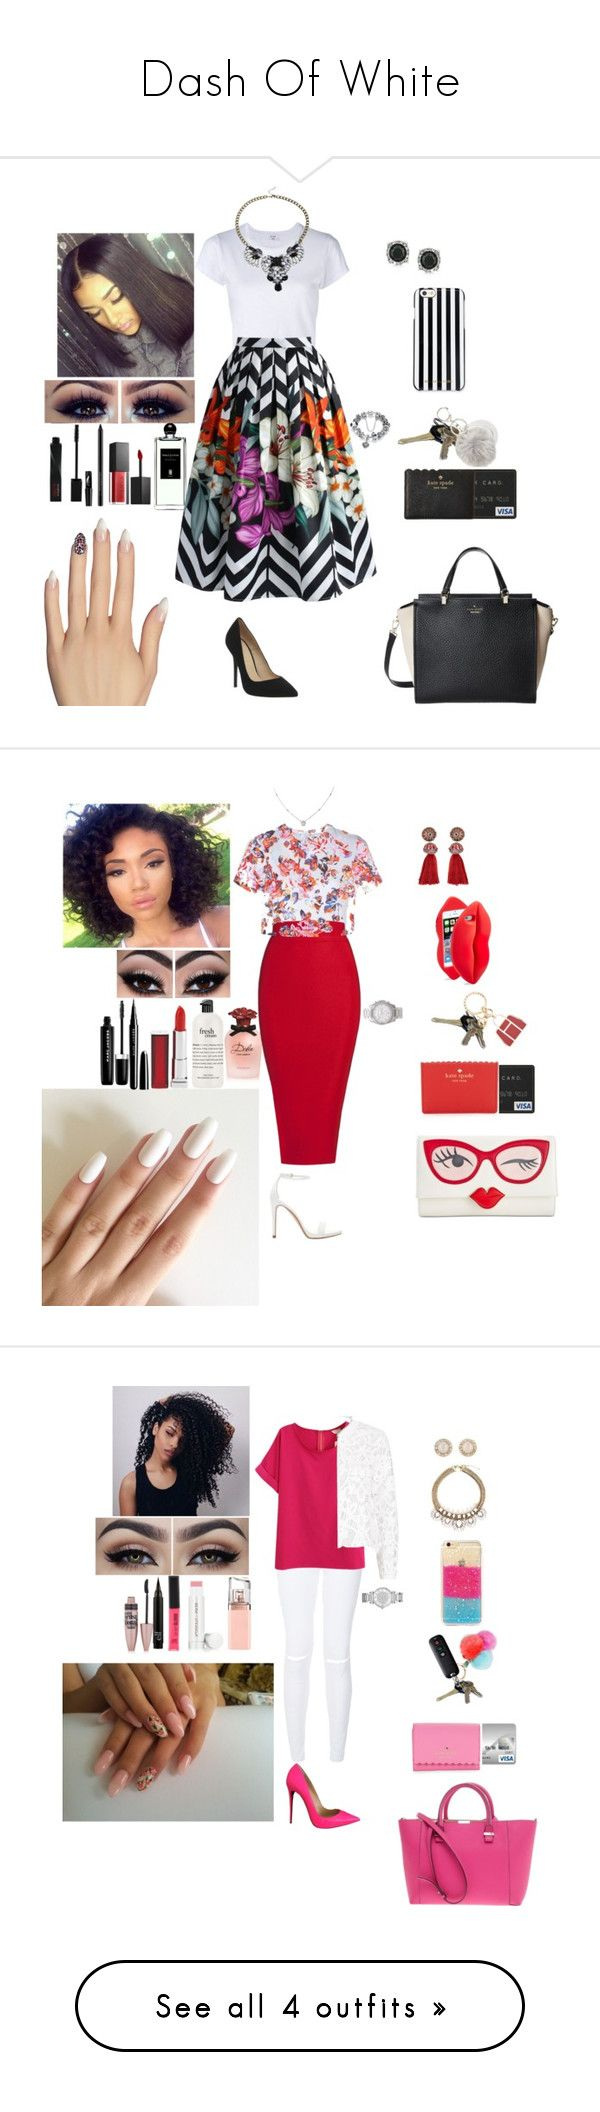 """""""Dash Of White"""" by qwert123456 ❤ liked on Polyvore featuring Serge Lutens, RE/DONE, Chicwish, Office, Mark Broumand, MICHAEL Michael Kors, Topshop, Kate Spade, Smashbox and Static Nails"""